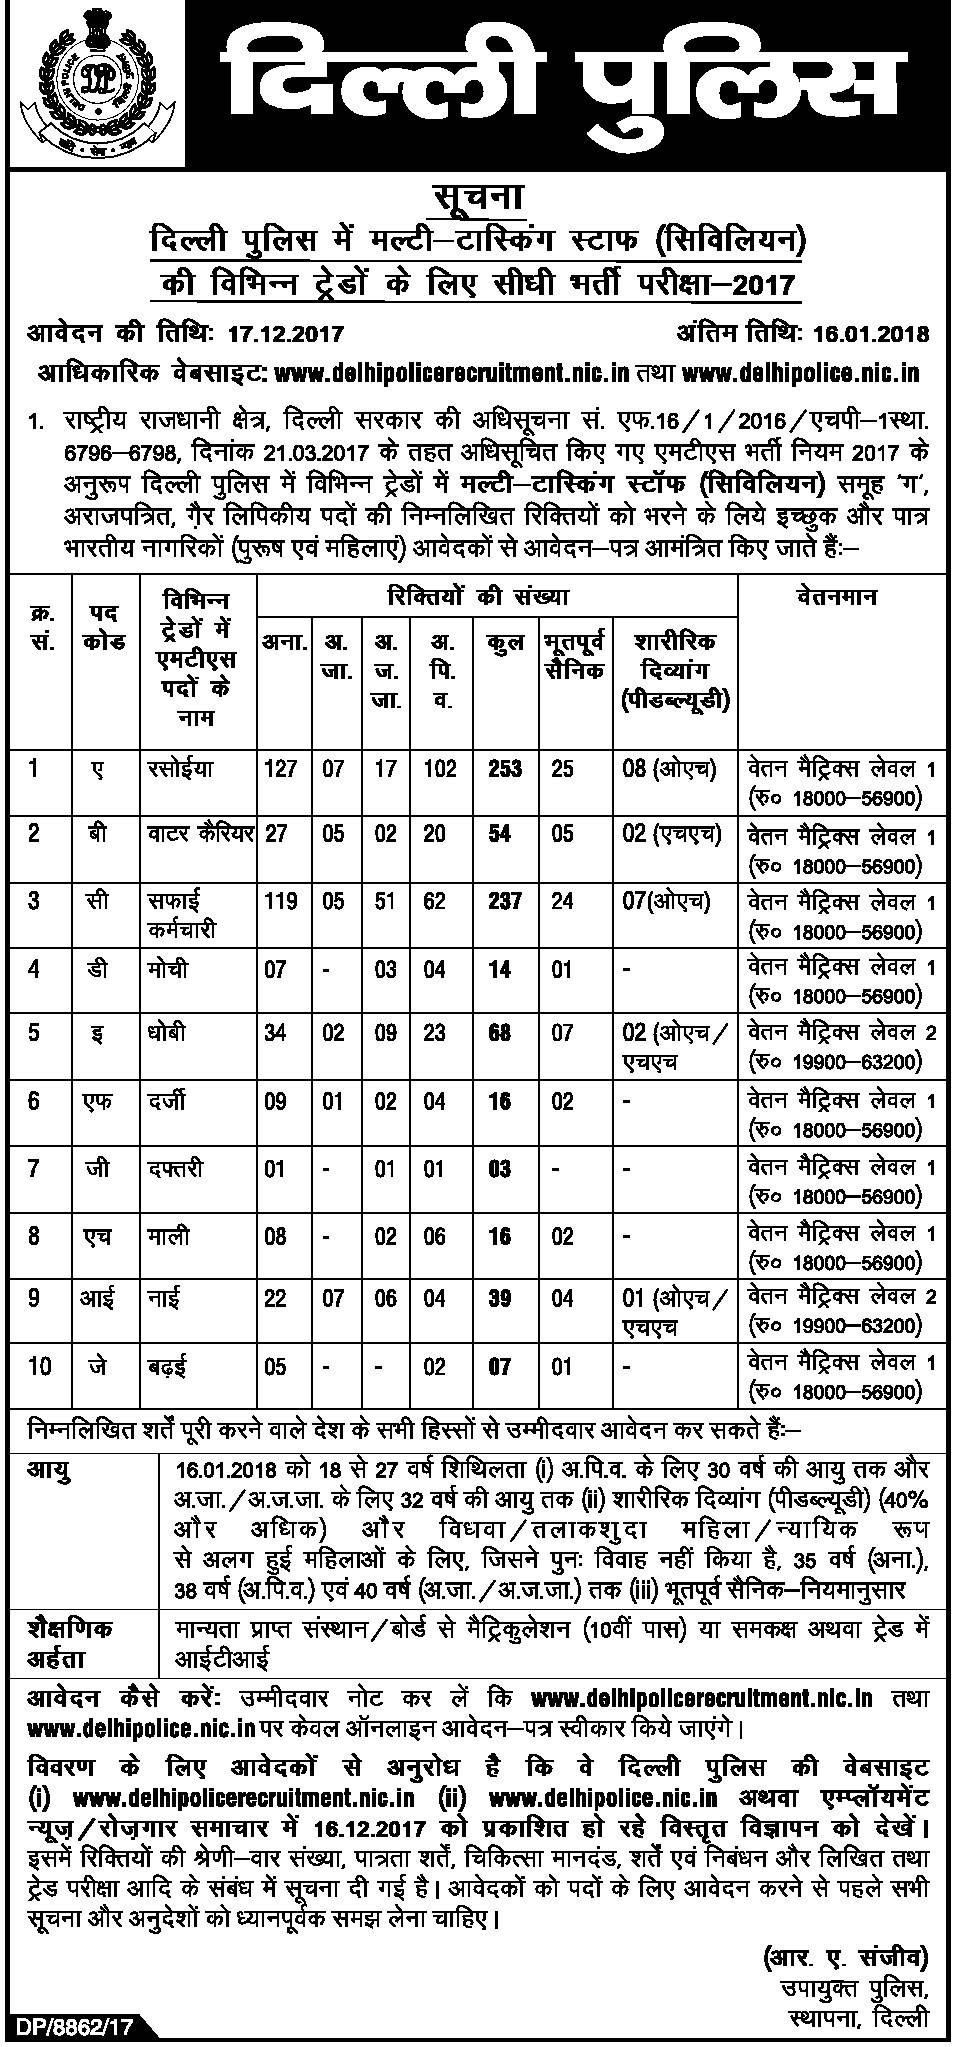 SSC Delhi Police Recruitment 2018